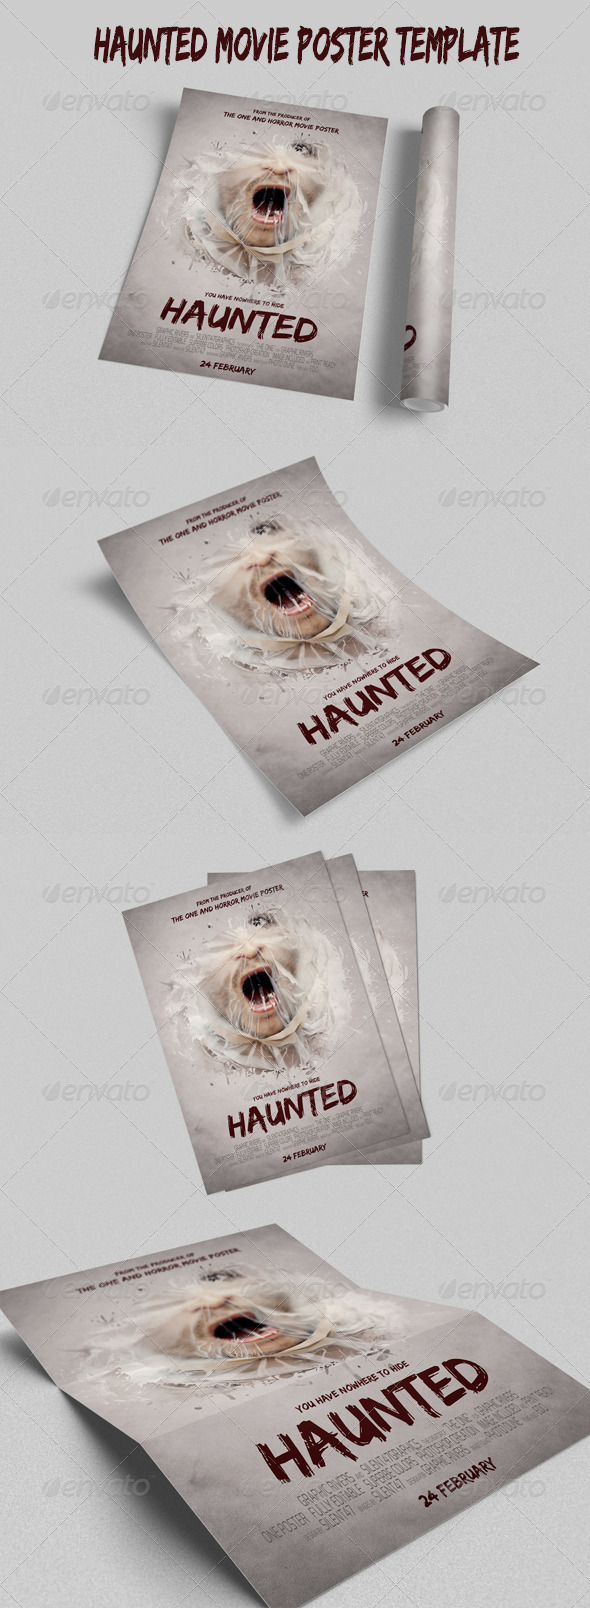 GraphicRiver Haunted Movie Poster Template 6563657